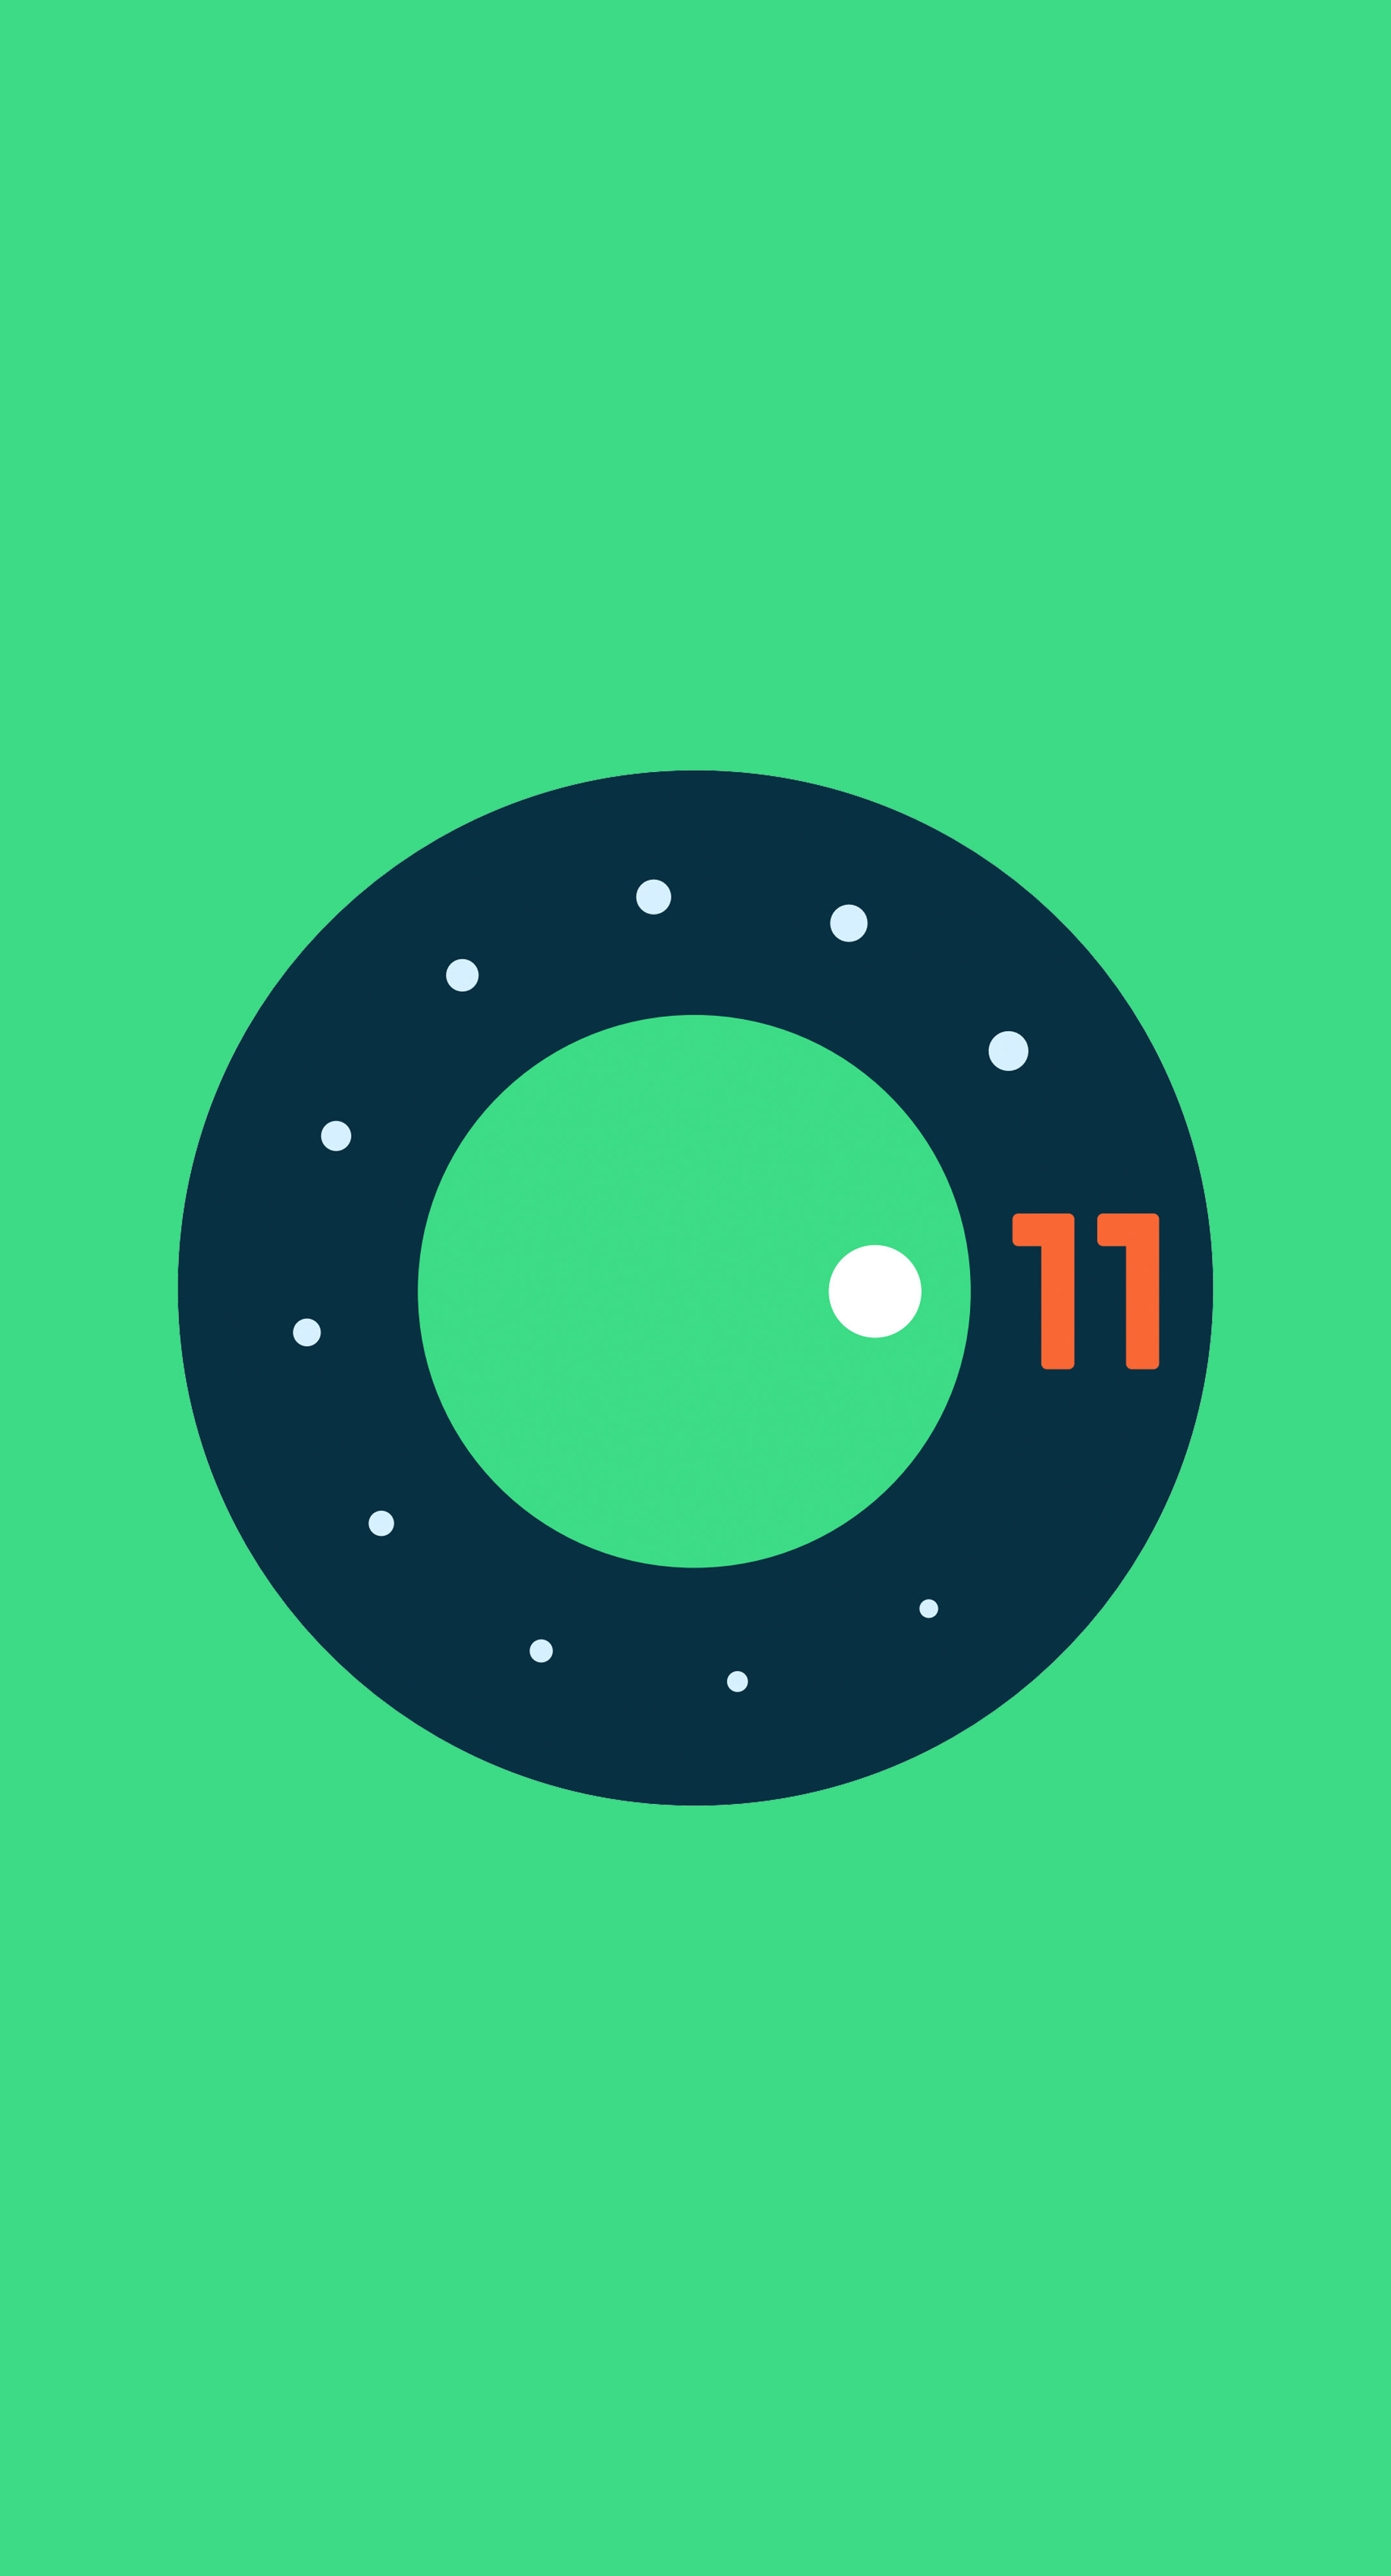 android-11-logo-green